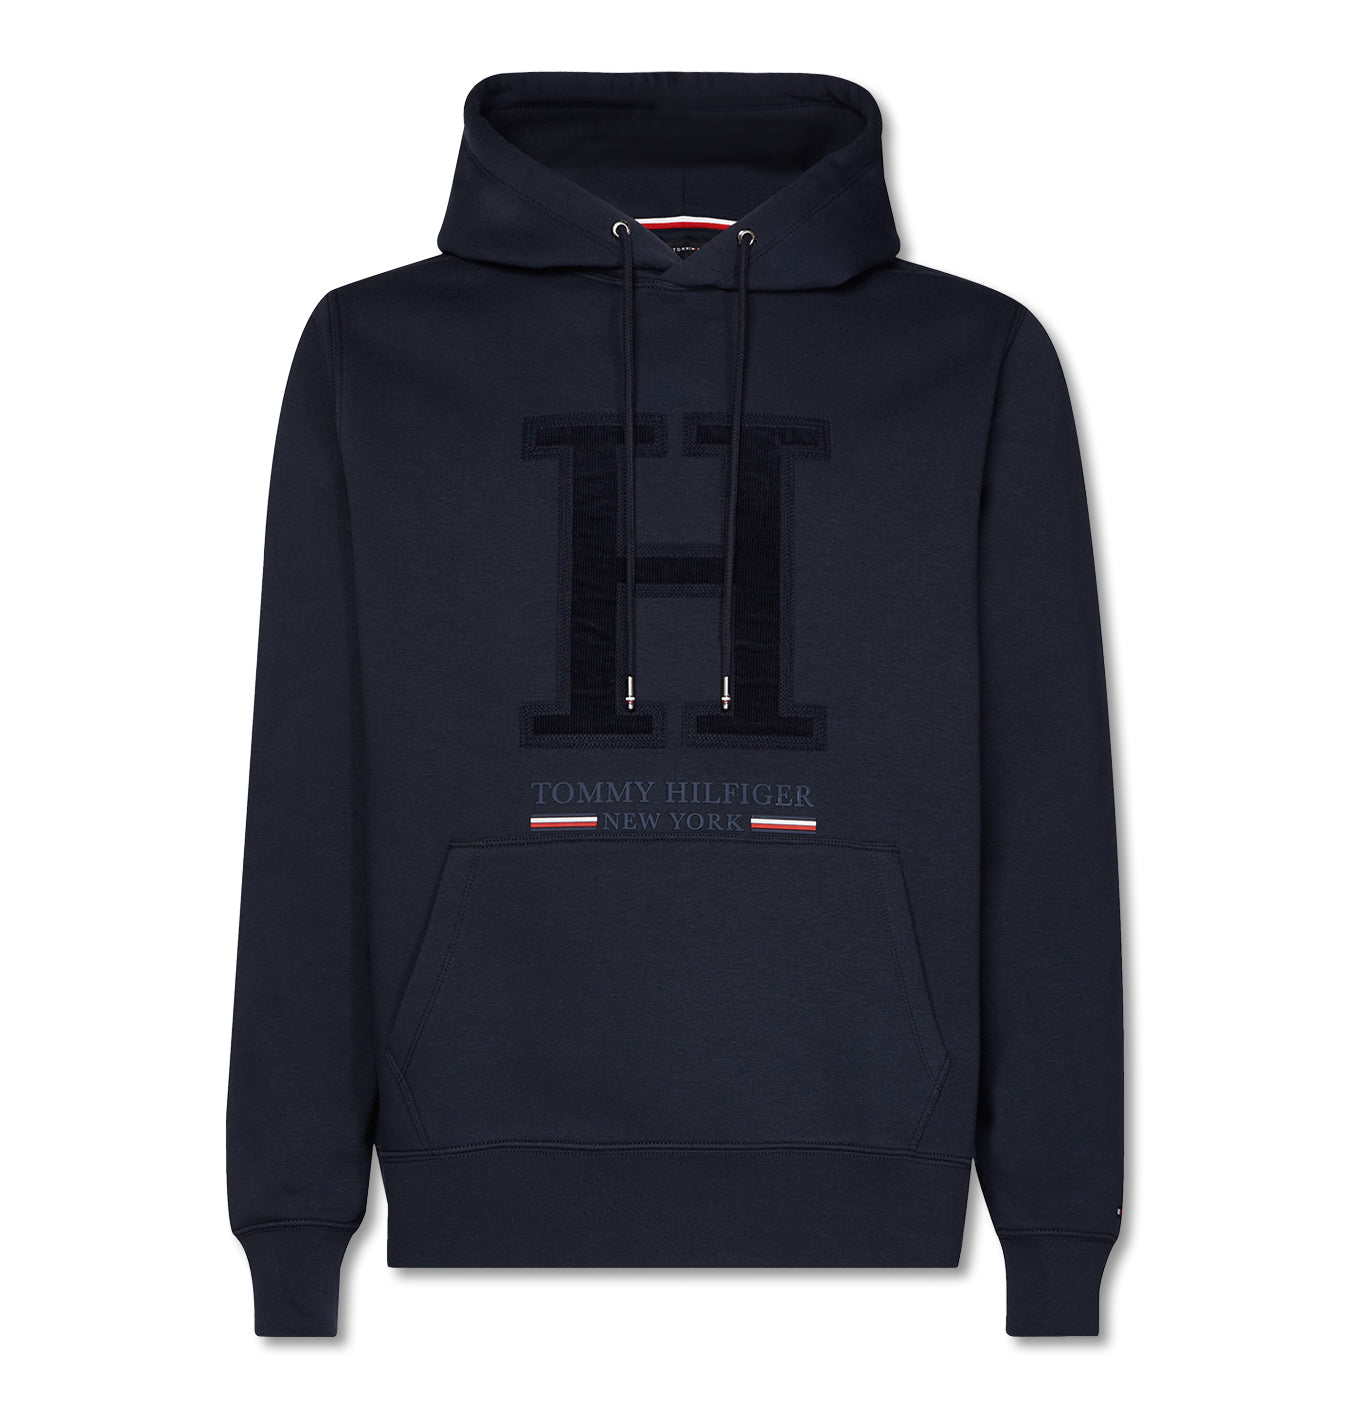 Image of Applique Artwork Hoodie Navy